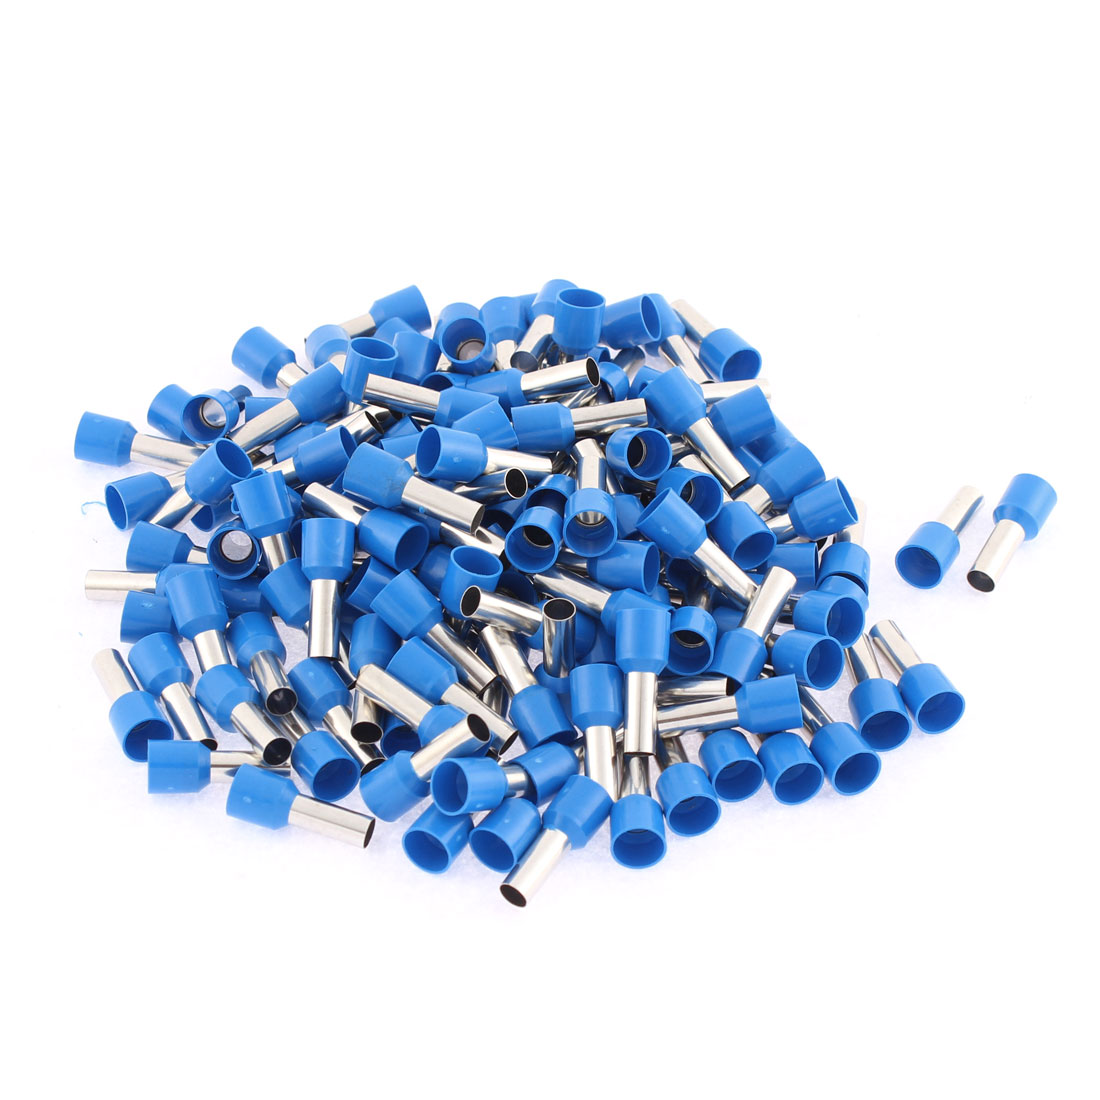 Tube Type Insulated Cable Wire Ends Terminals E10-12 8AWG 150Pcs